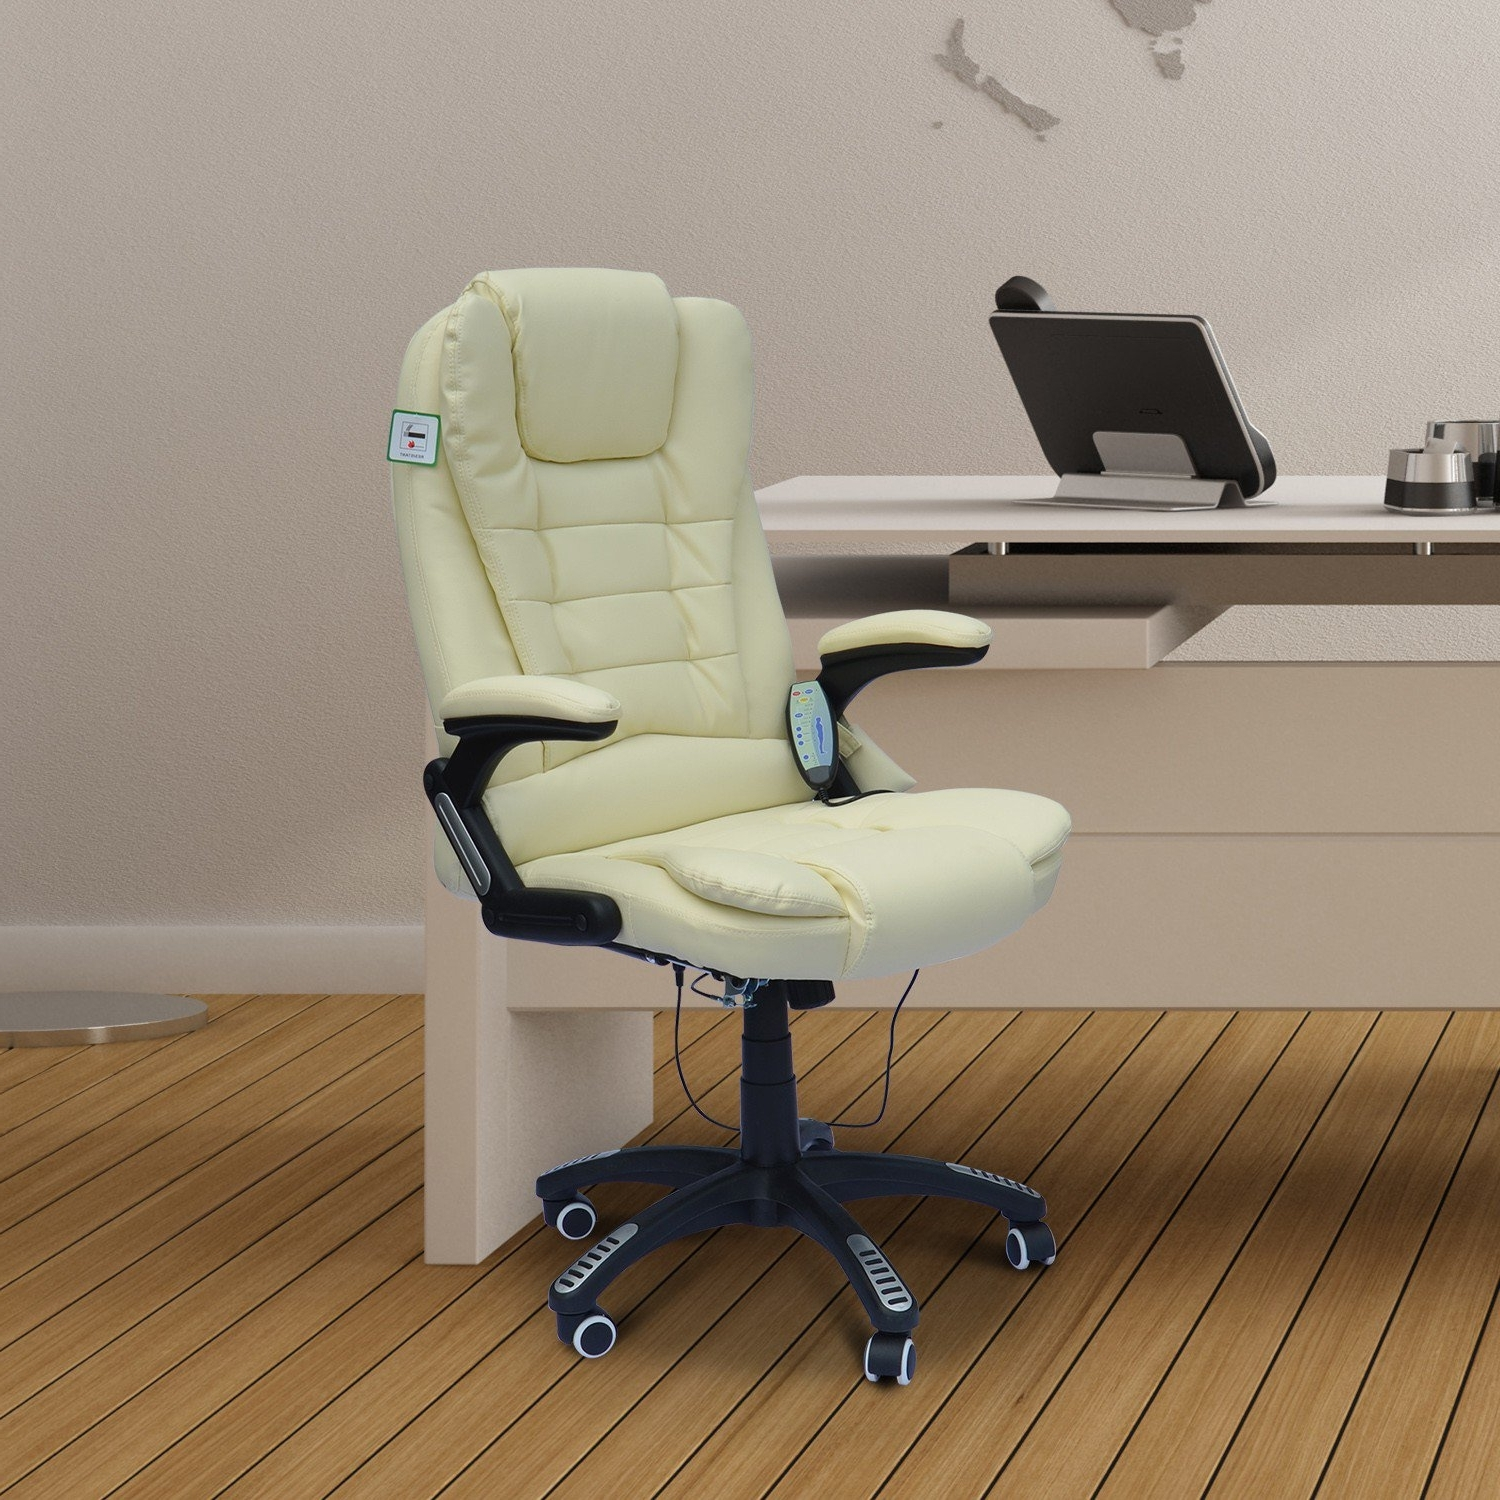 Executive Office Chairs With Massage/heat Pertaining To Widely Used Homcom Massage Chair Office Computer Executive Ergonomic Heated (Gallery 19 of 20)